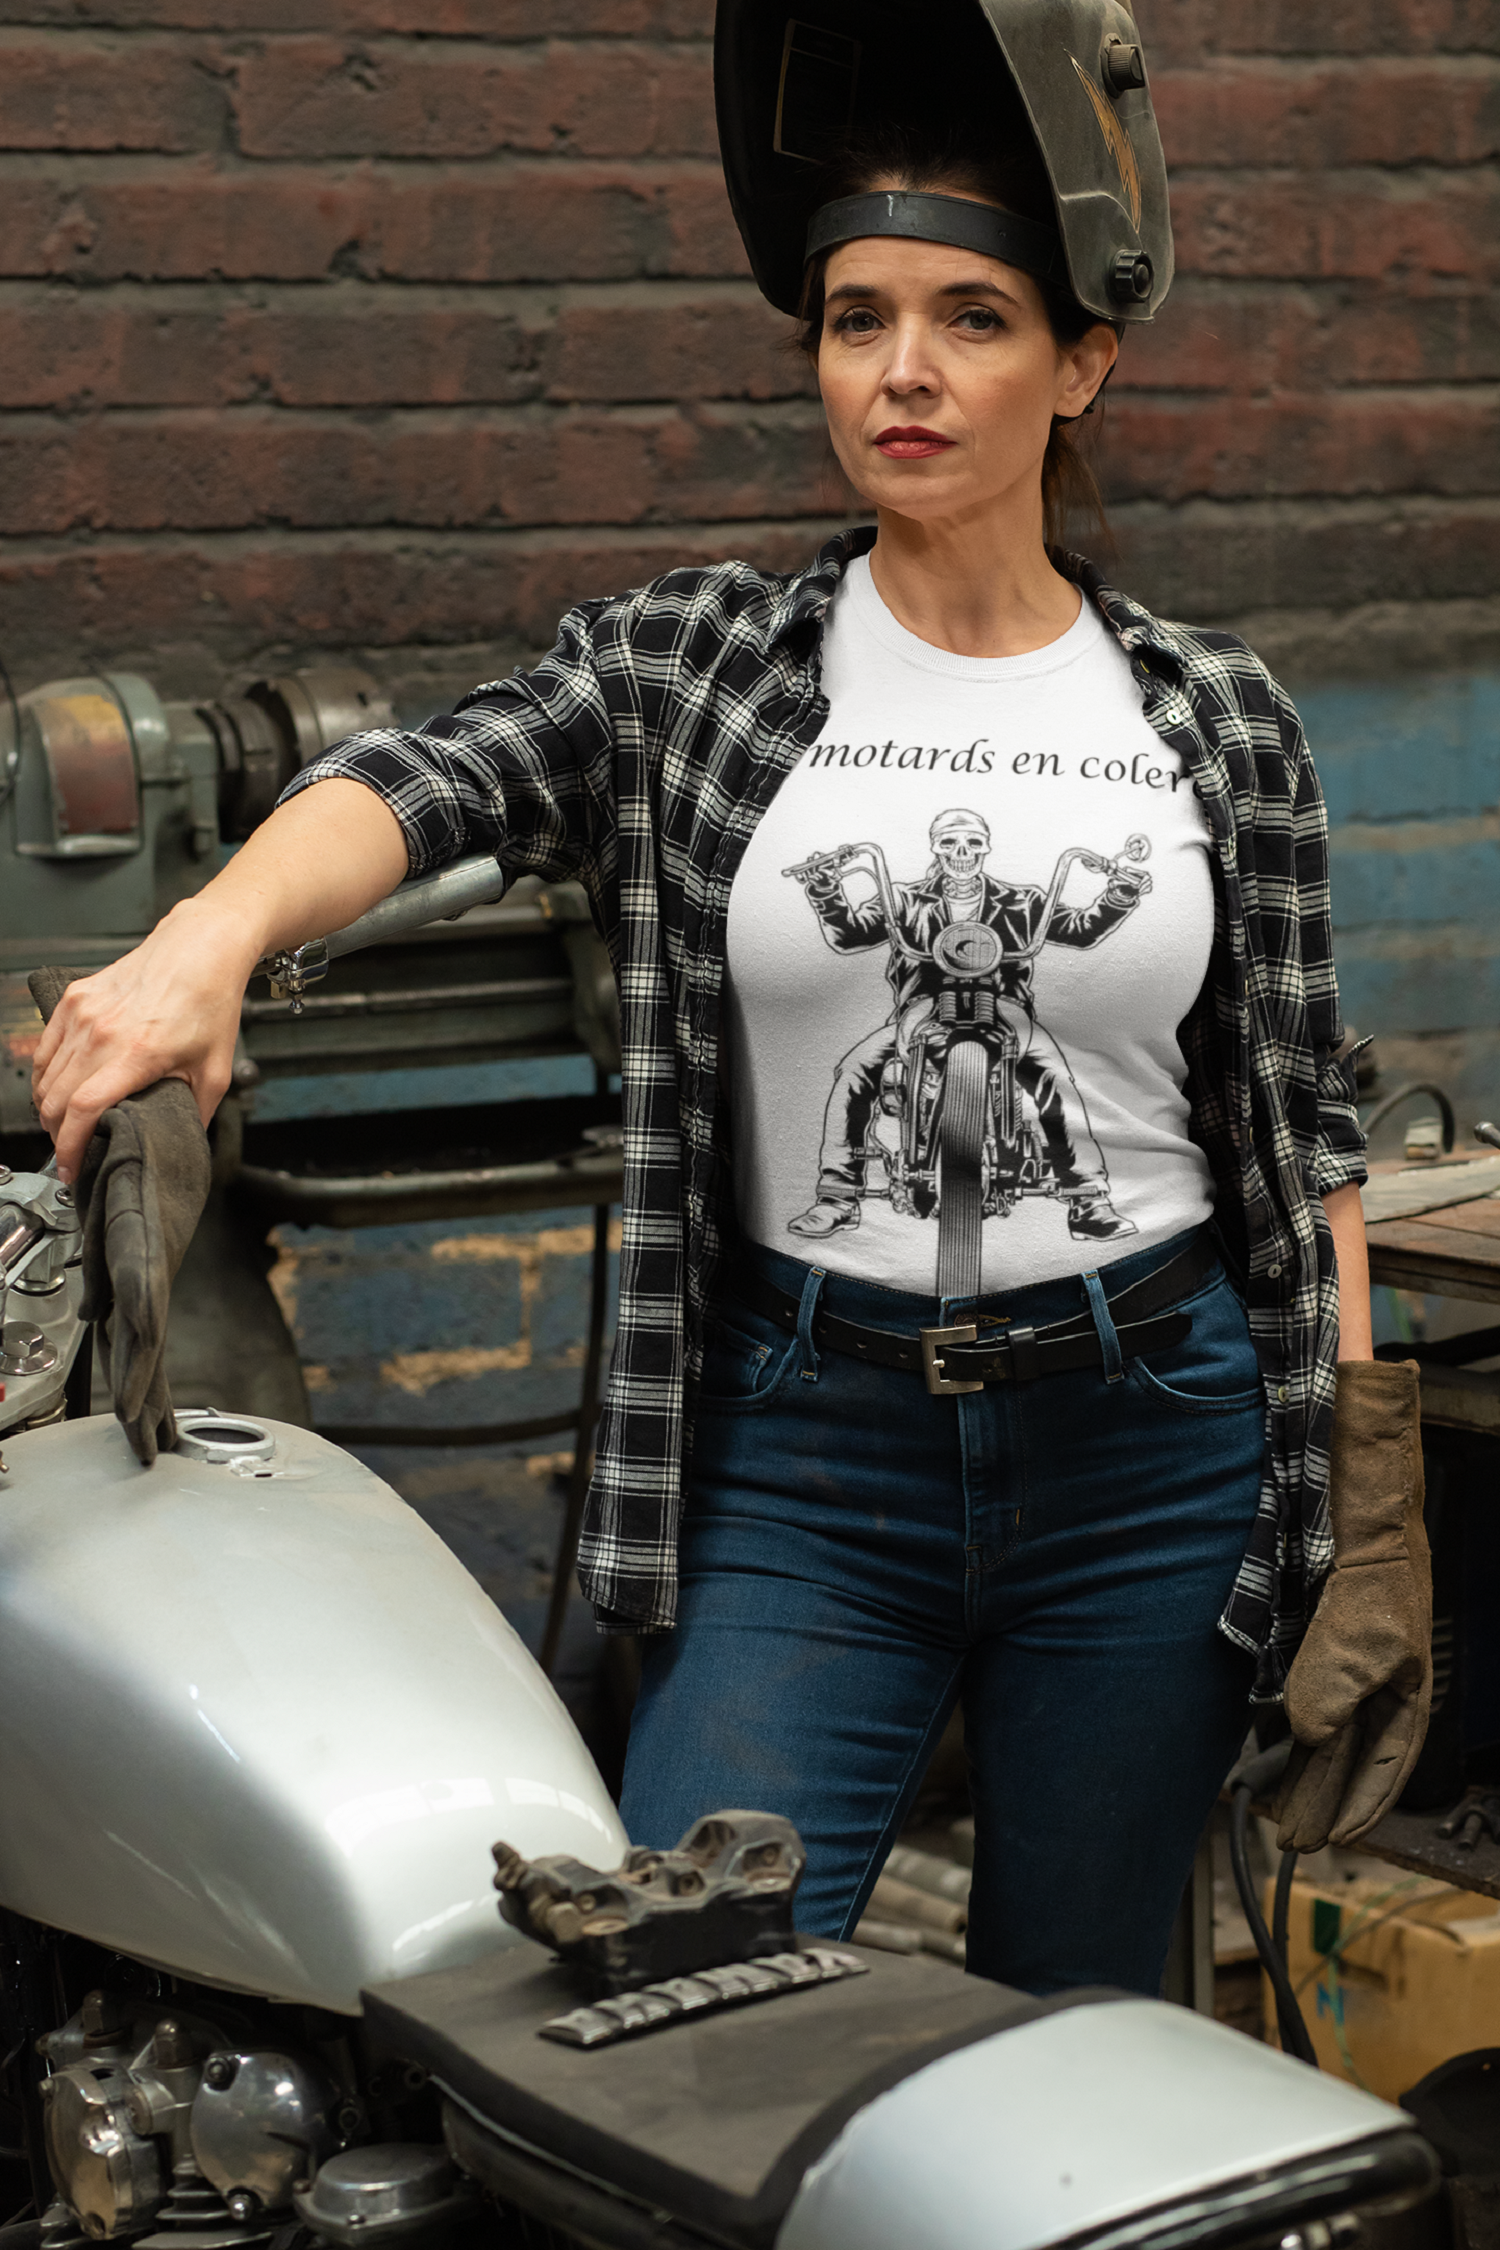 t-shirt-mockup-of-a-woman-repairing-her-motorcycle-31798